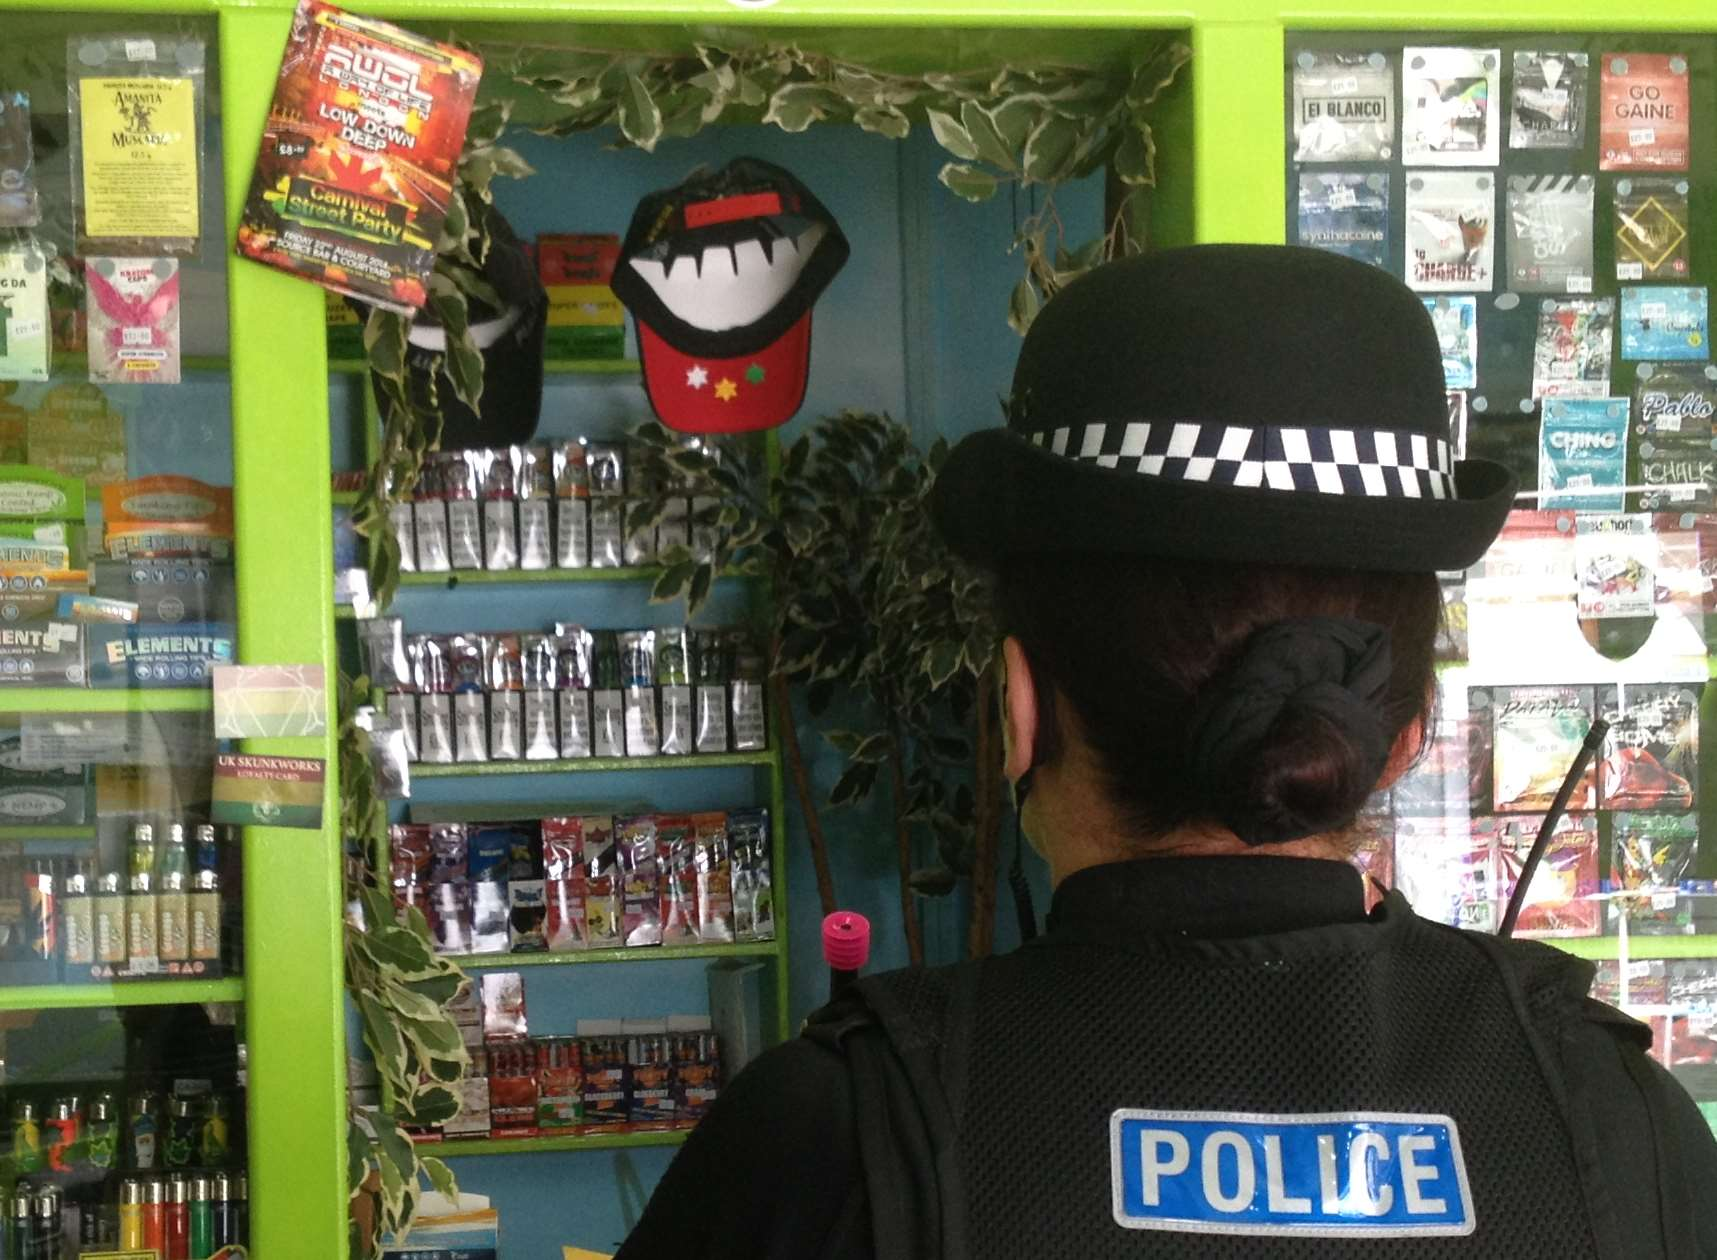 Police officers supported Trading Standards in the raid